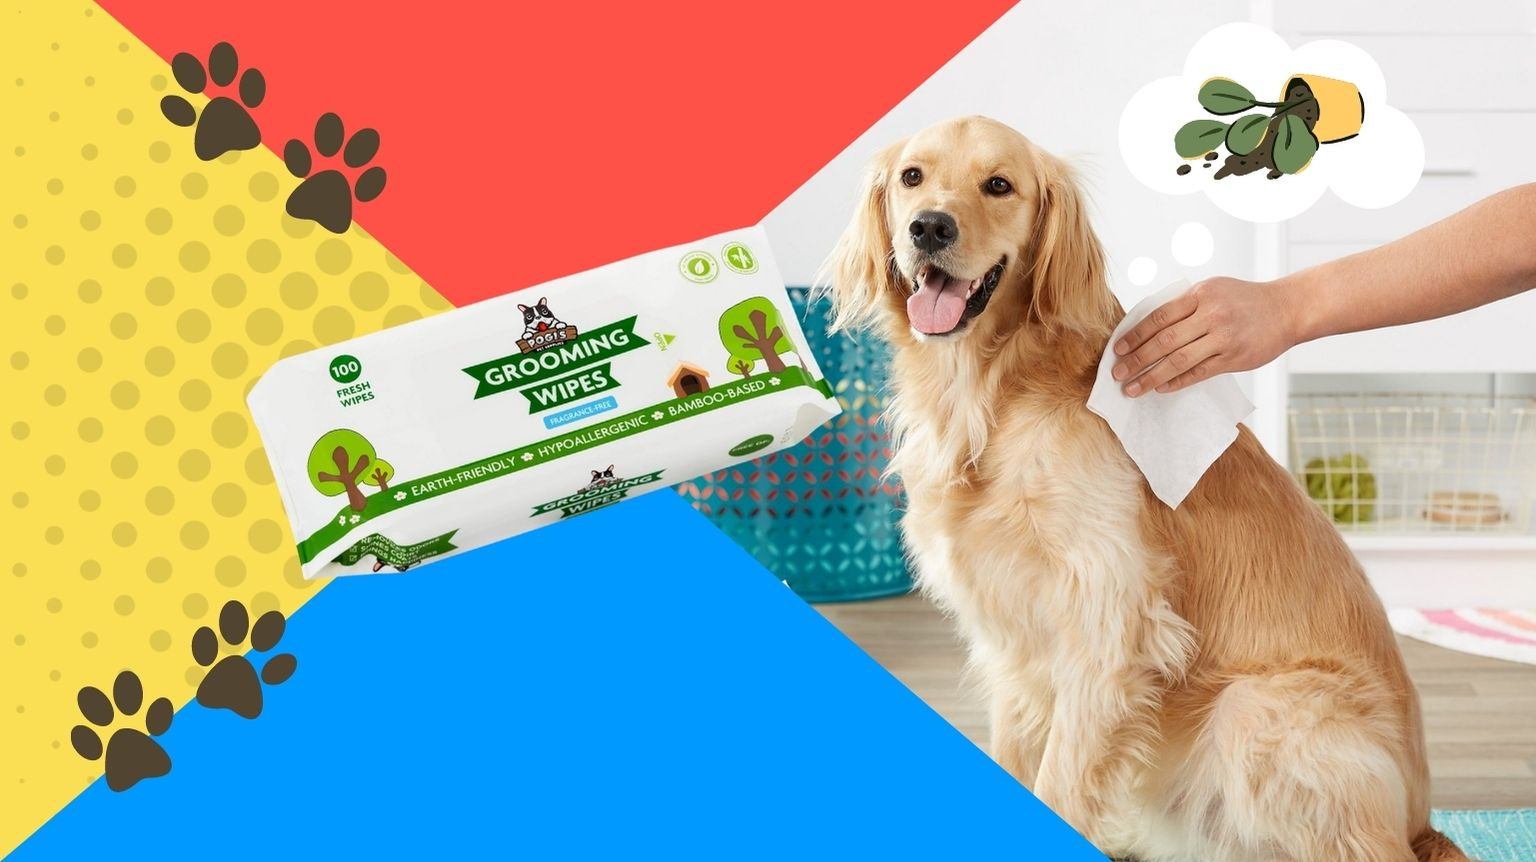 Golden Retriever getting cleaned with dog wipes.